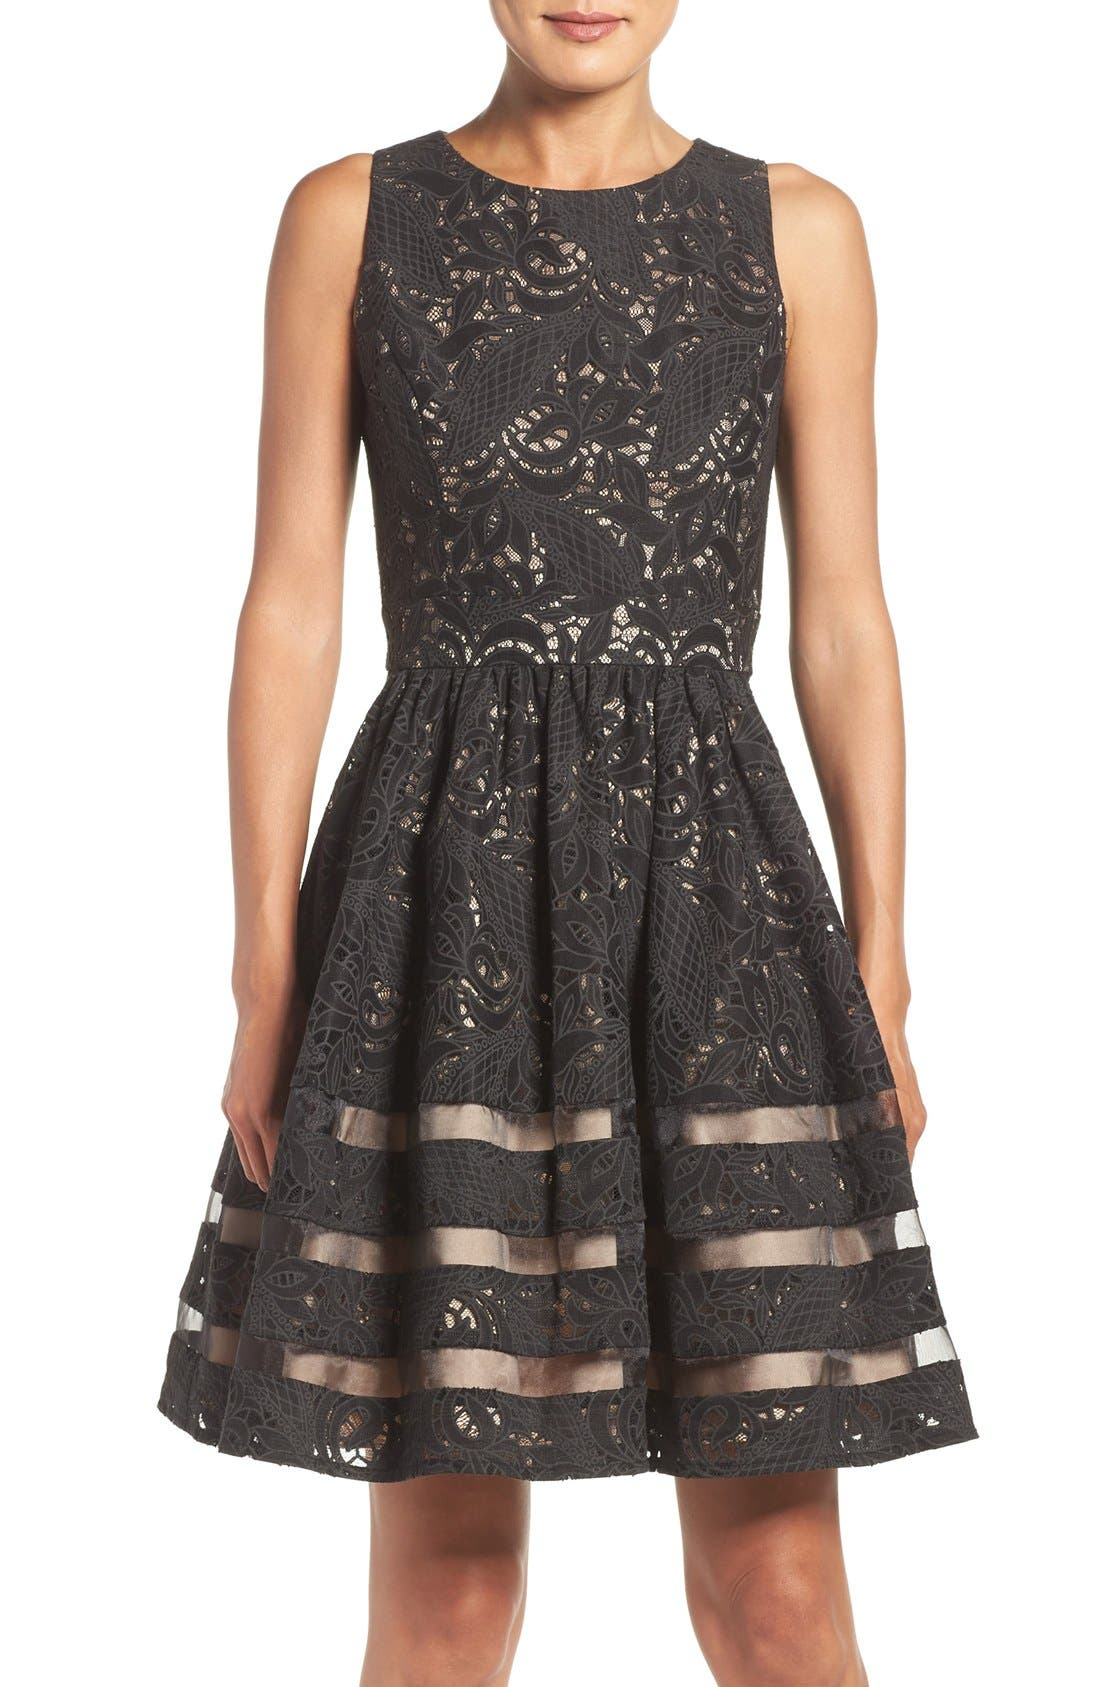 Alternate Image 1 Selected - Eliza J Cotton Blend Fit & Flare Dress (Regular & Petite)